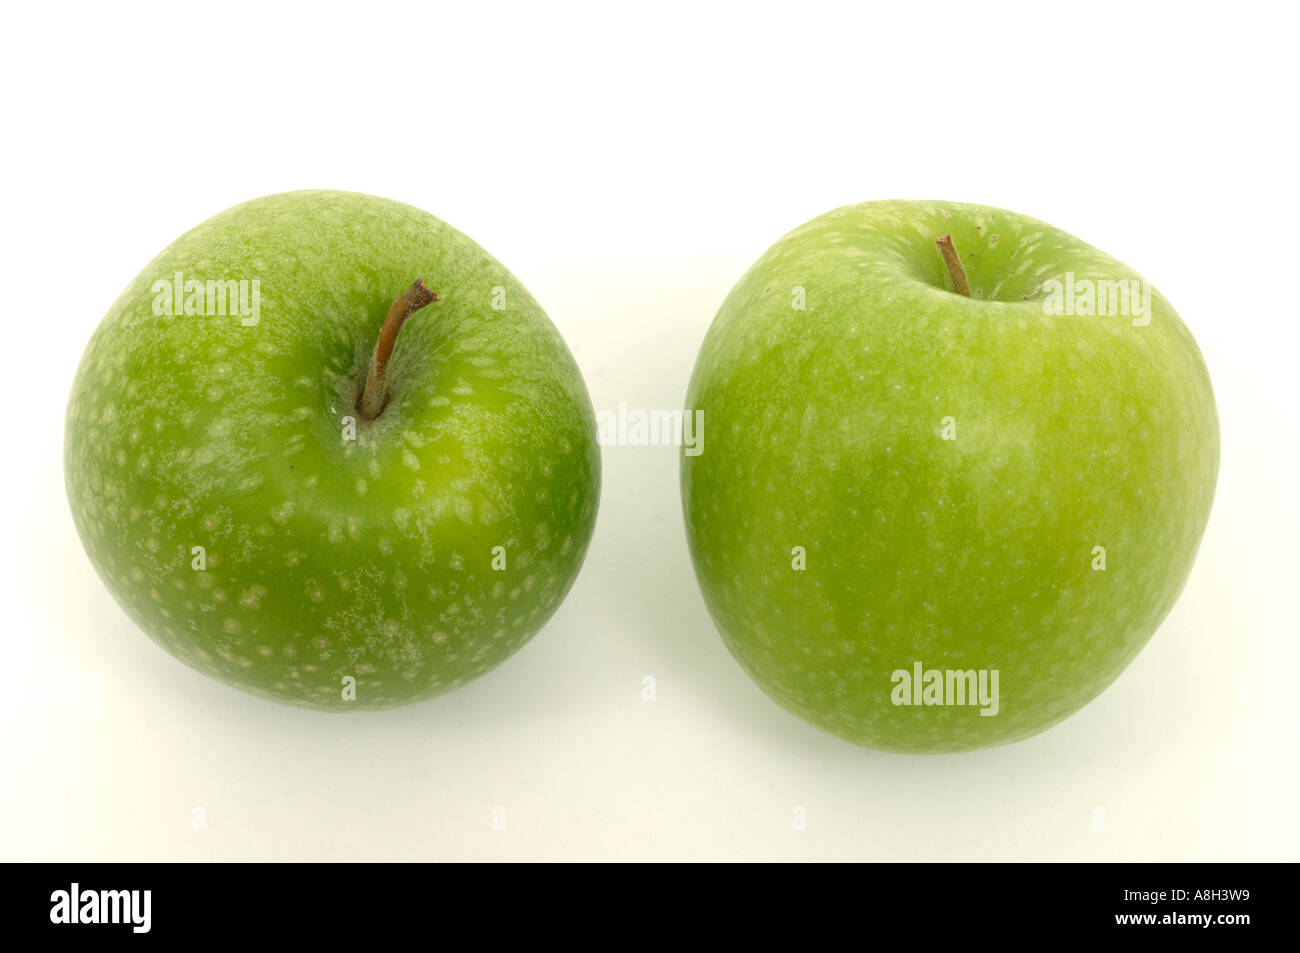 Granny Smith apples supermarket bought and in normal shop condition - Stock Image